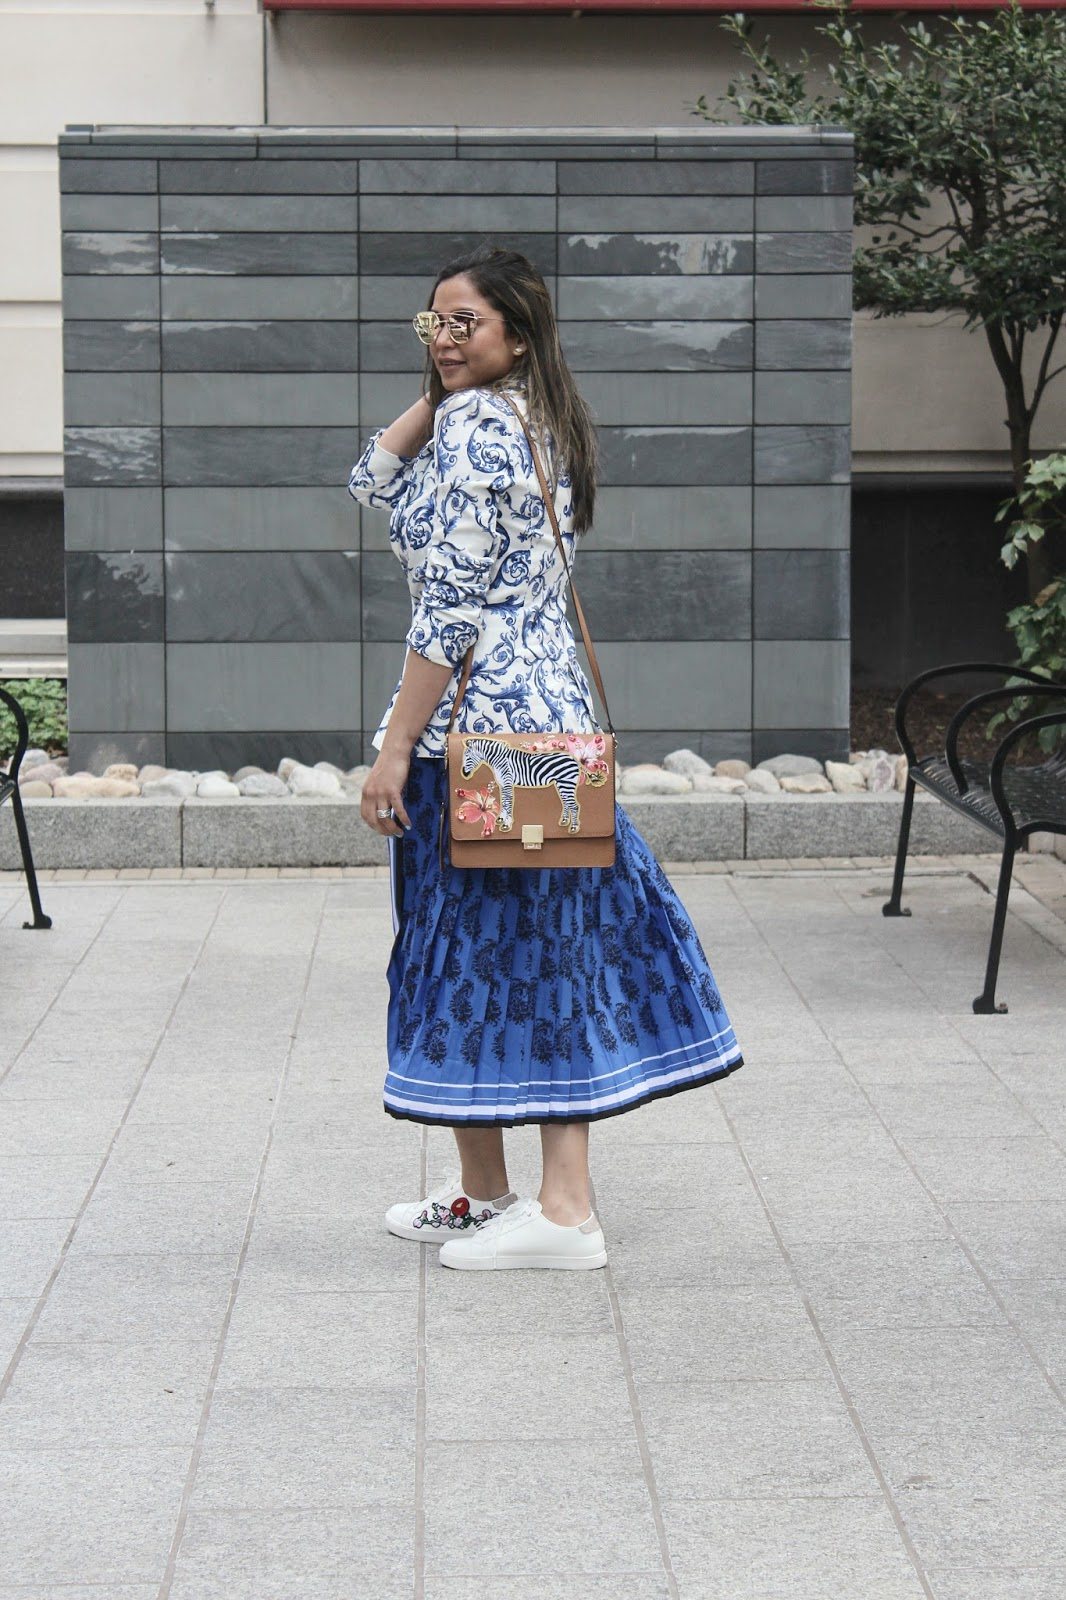 how to dress like  a strret style star, sneakers, embroidered sneakers, banana republic blue paisley dress, print on print, aldo zebra bag, print mixing, fashion, style, ootd, blue dress , redblue and white, myriad musings, Saumya Shiohare